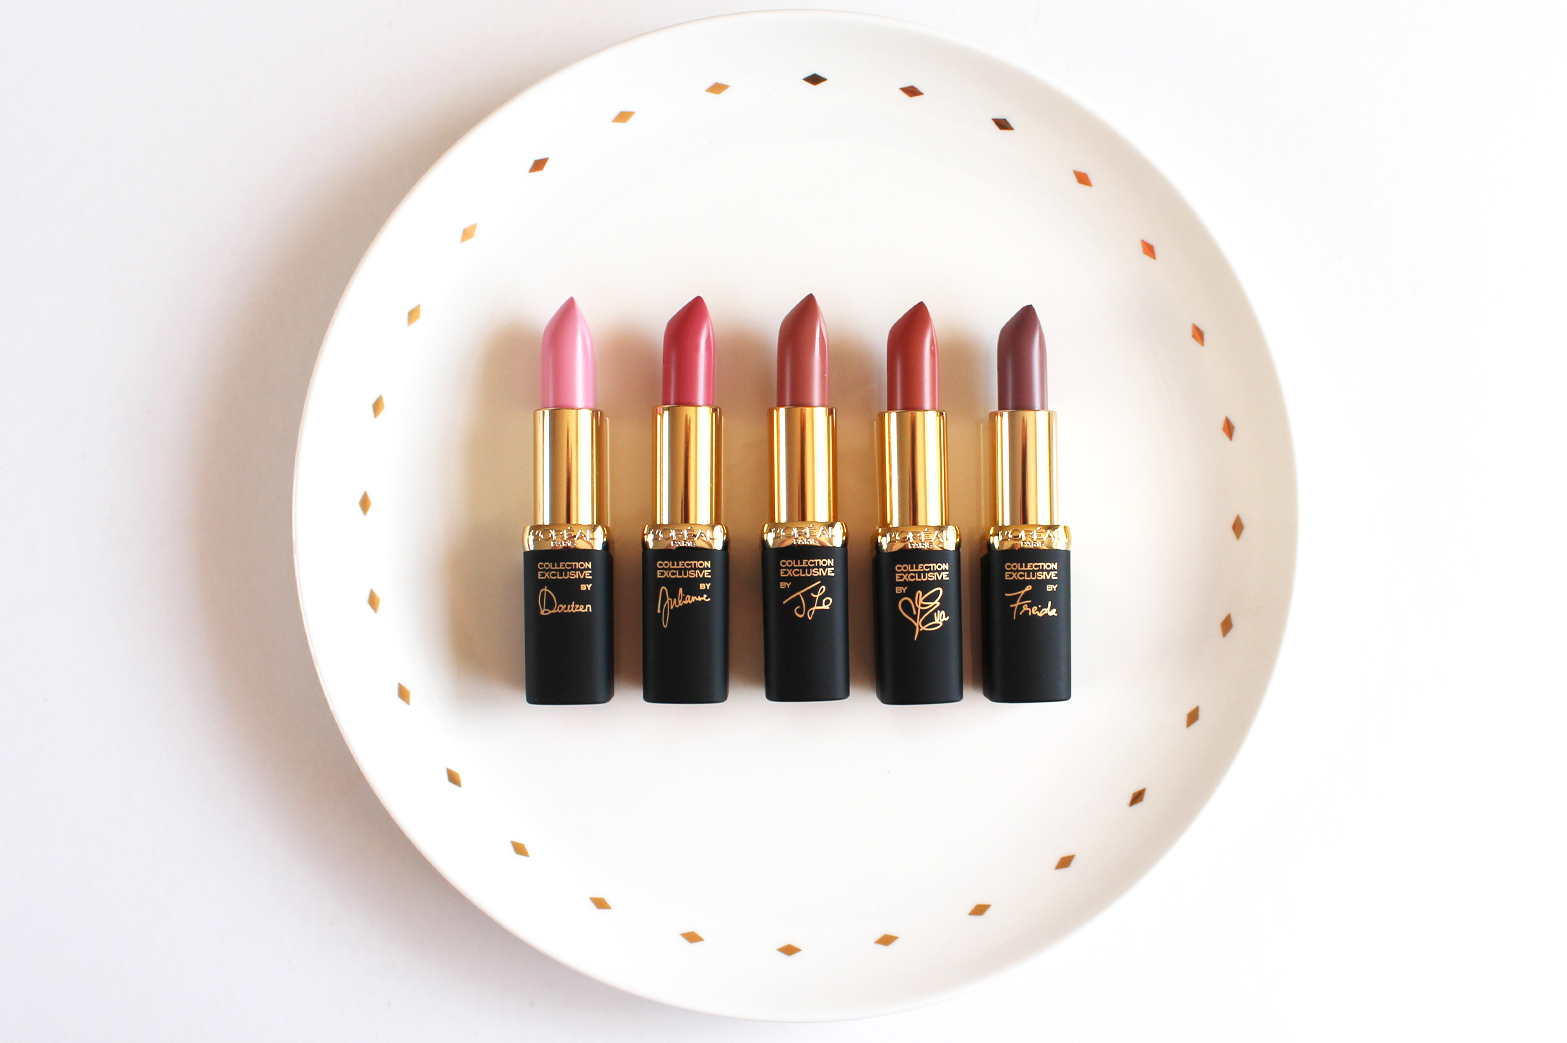 L'OREAL PARIS | Collection Exclusive Nudes Lipstick Collection - Review + Swatches